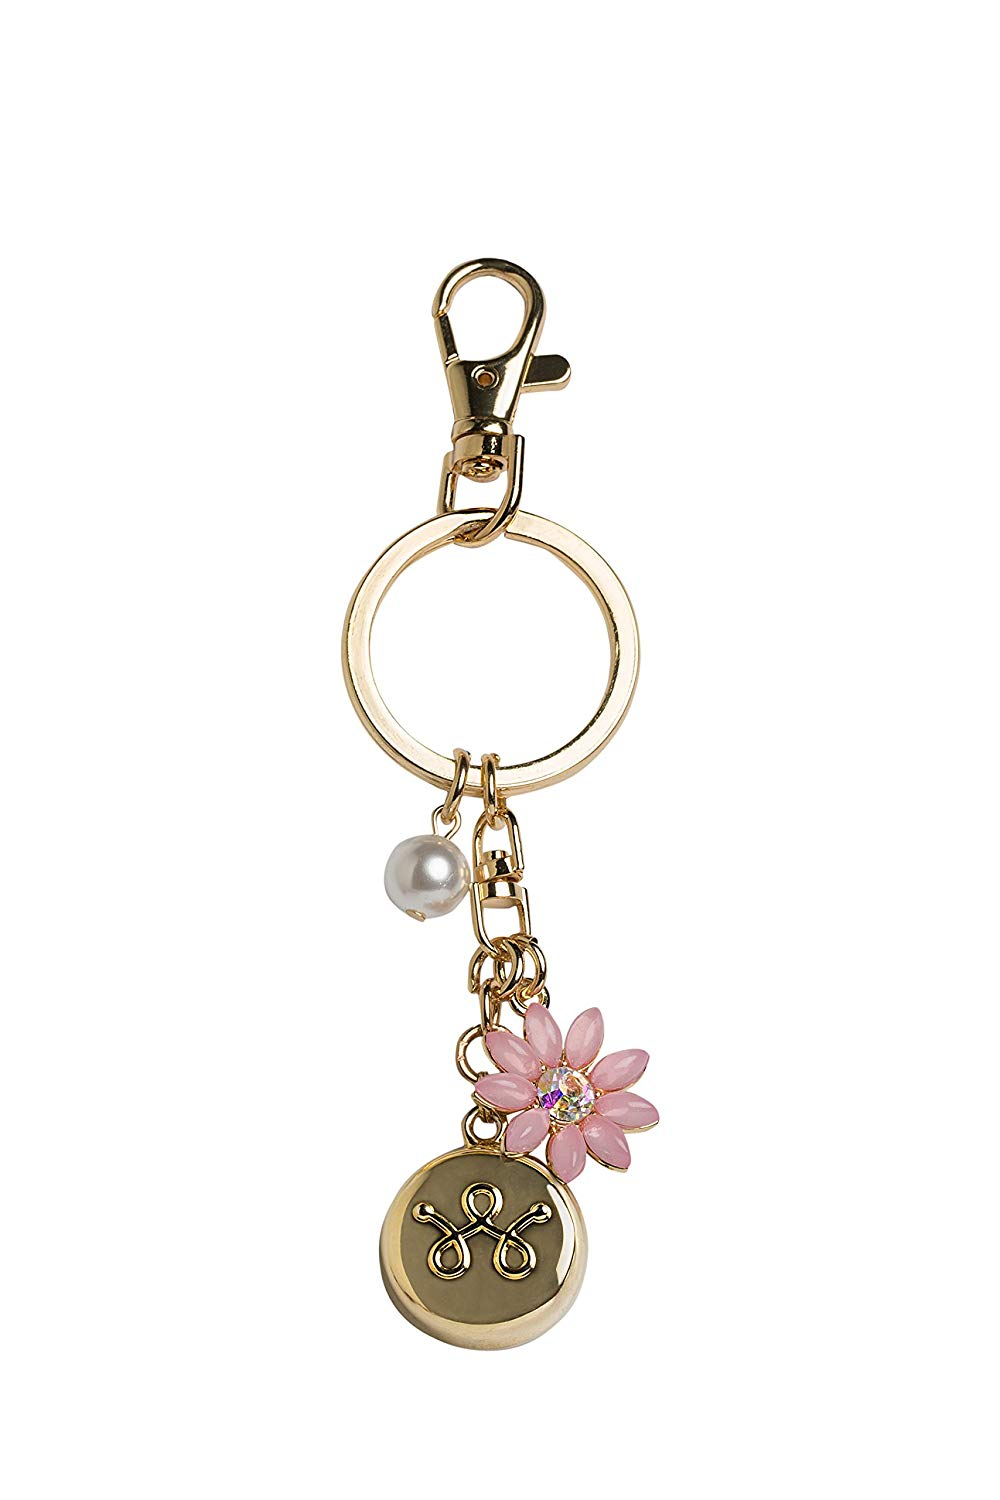 Gold Flower Keychain Personal Safety Device 1